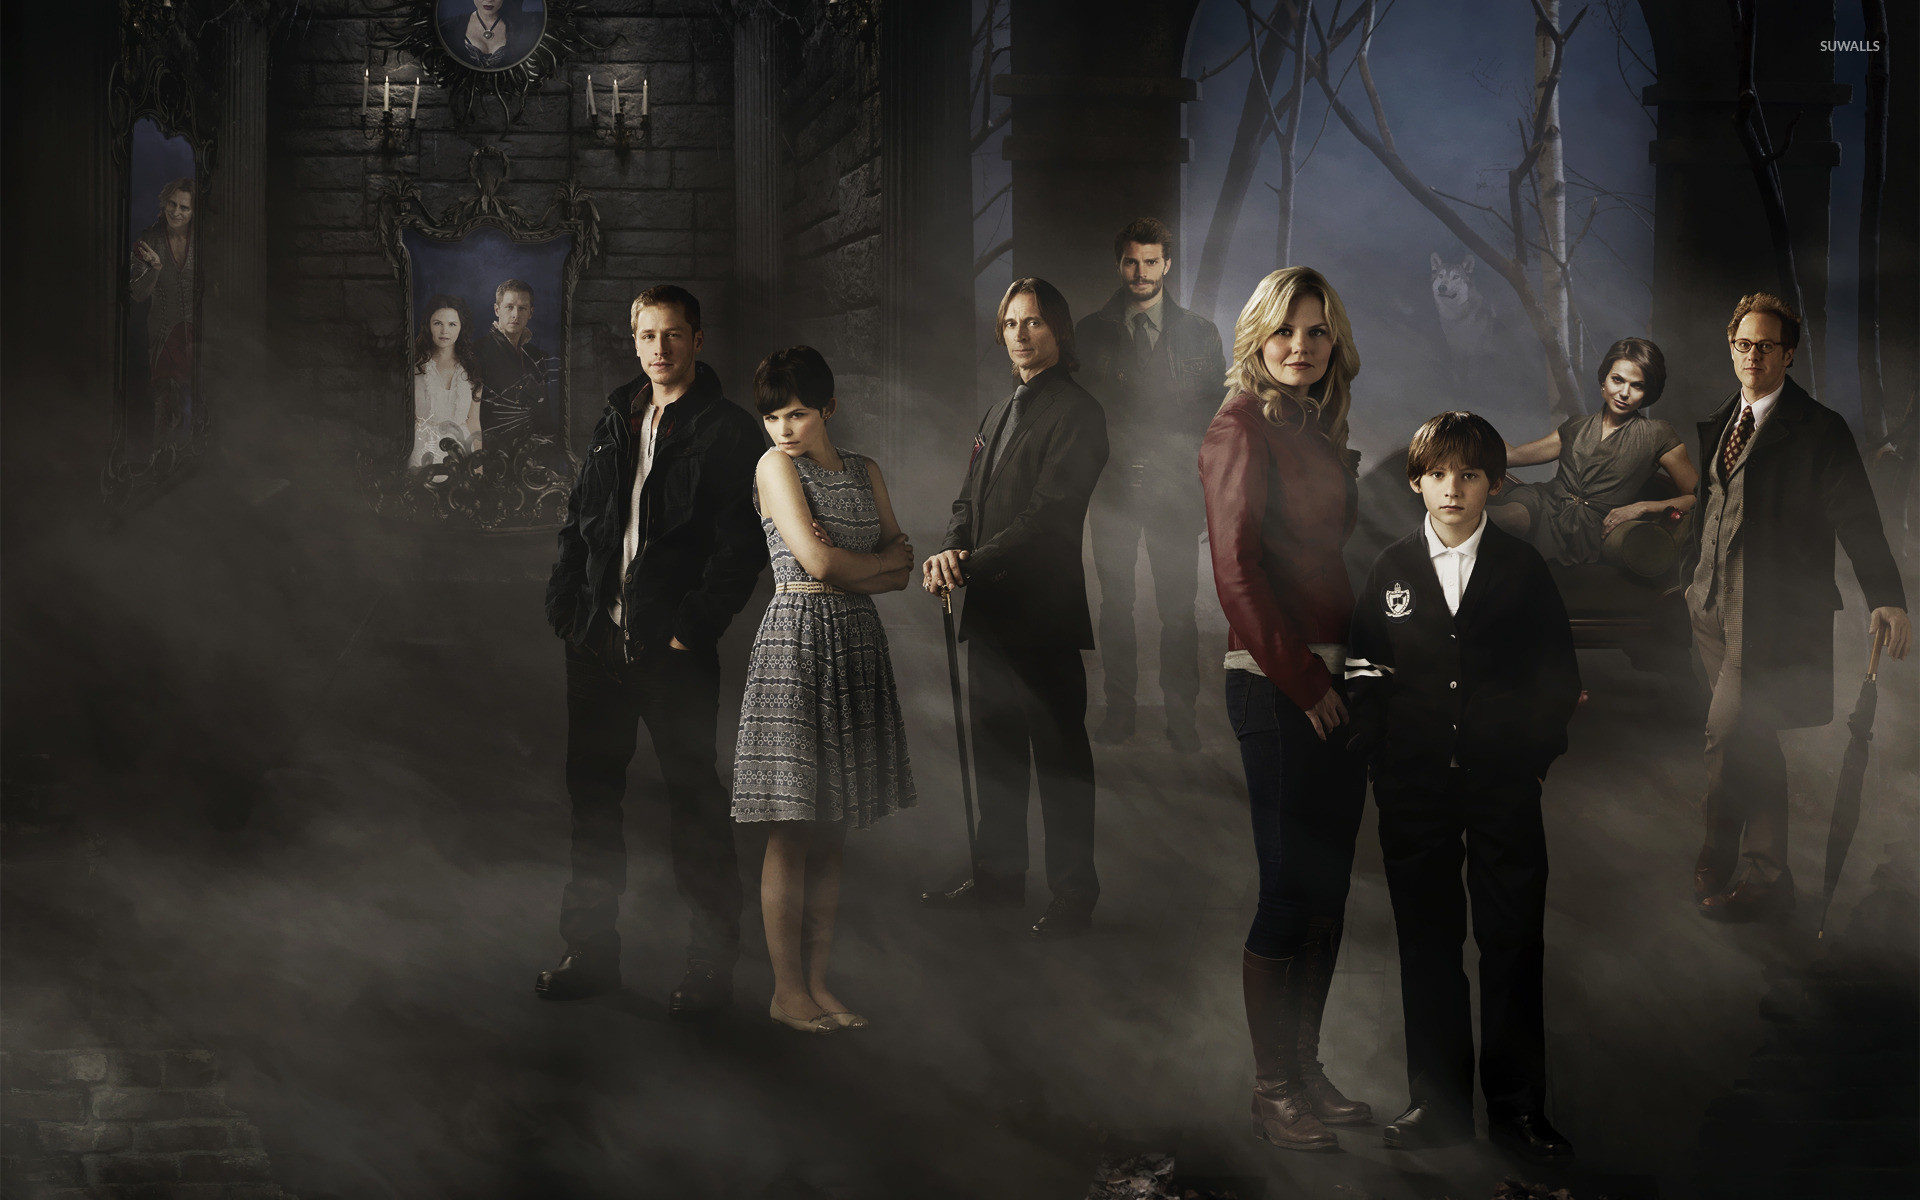 once upon a time 3 wallpaper